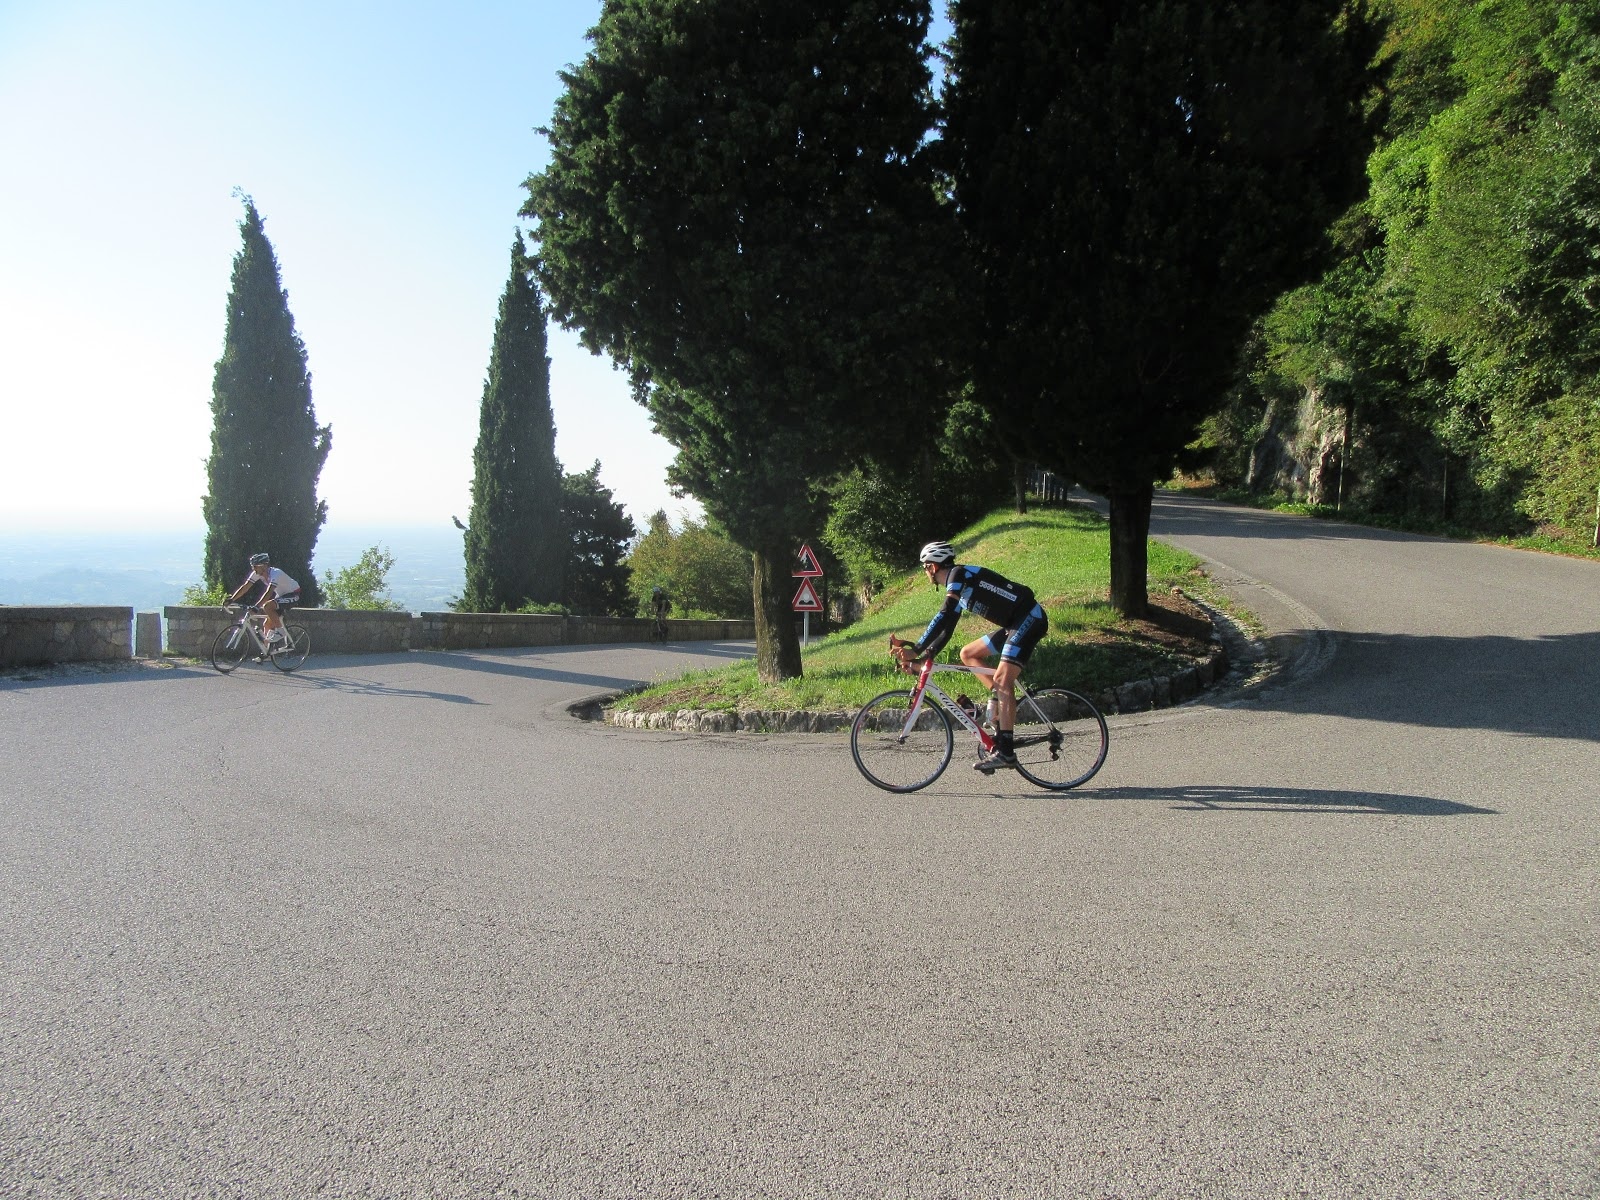 Climbing by bike Monte Grappa from Romano d'Ezzilino - tornante, cyclists and roadway